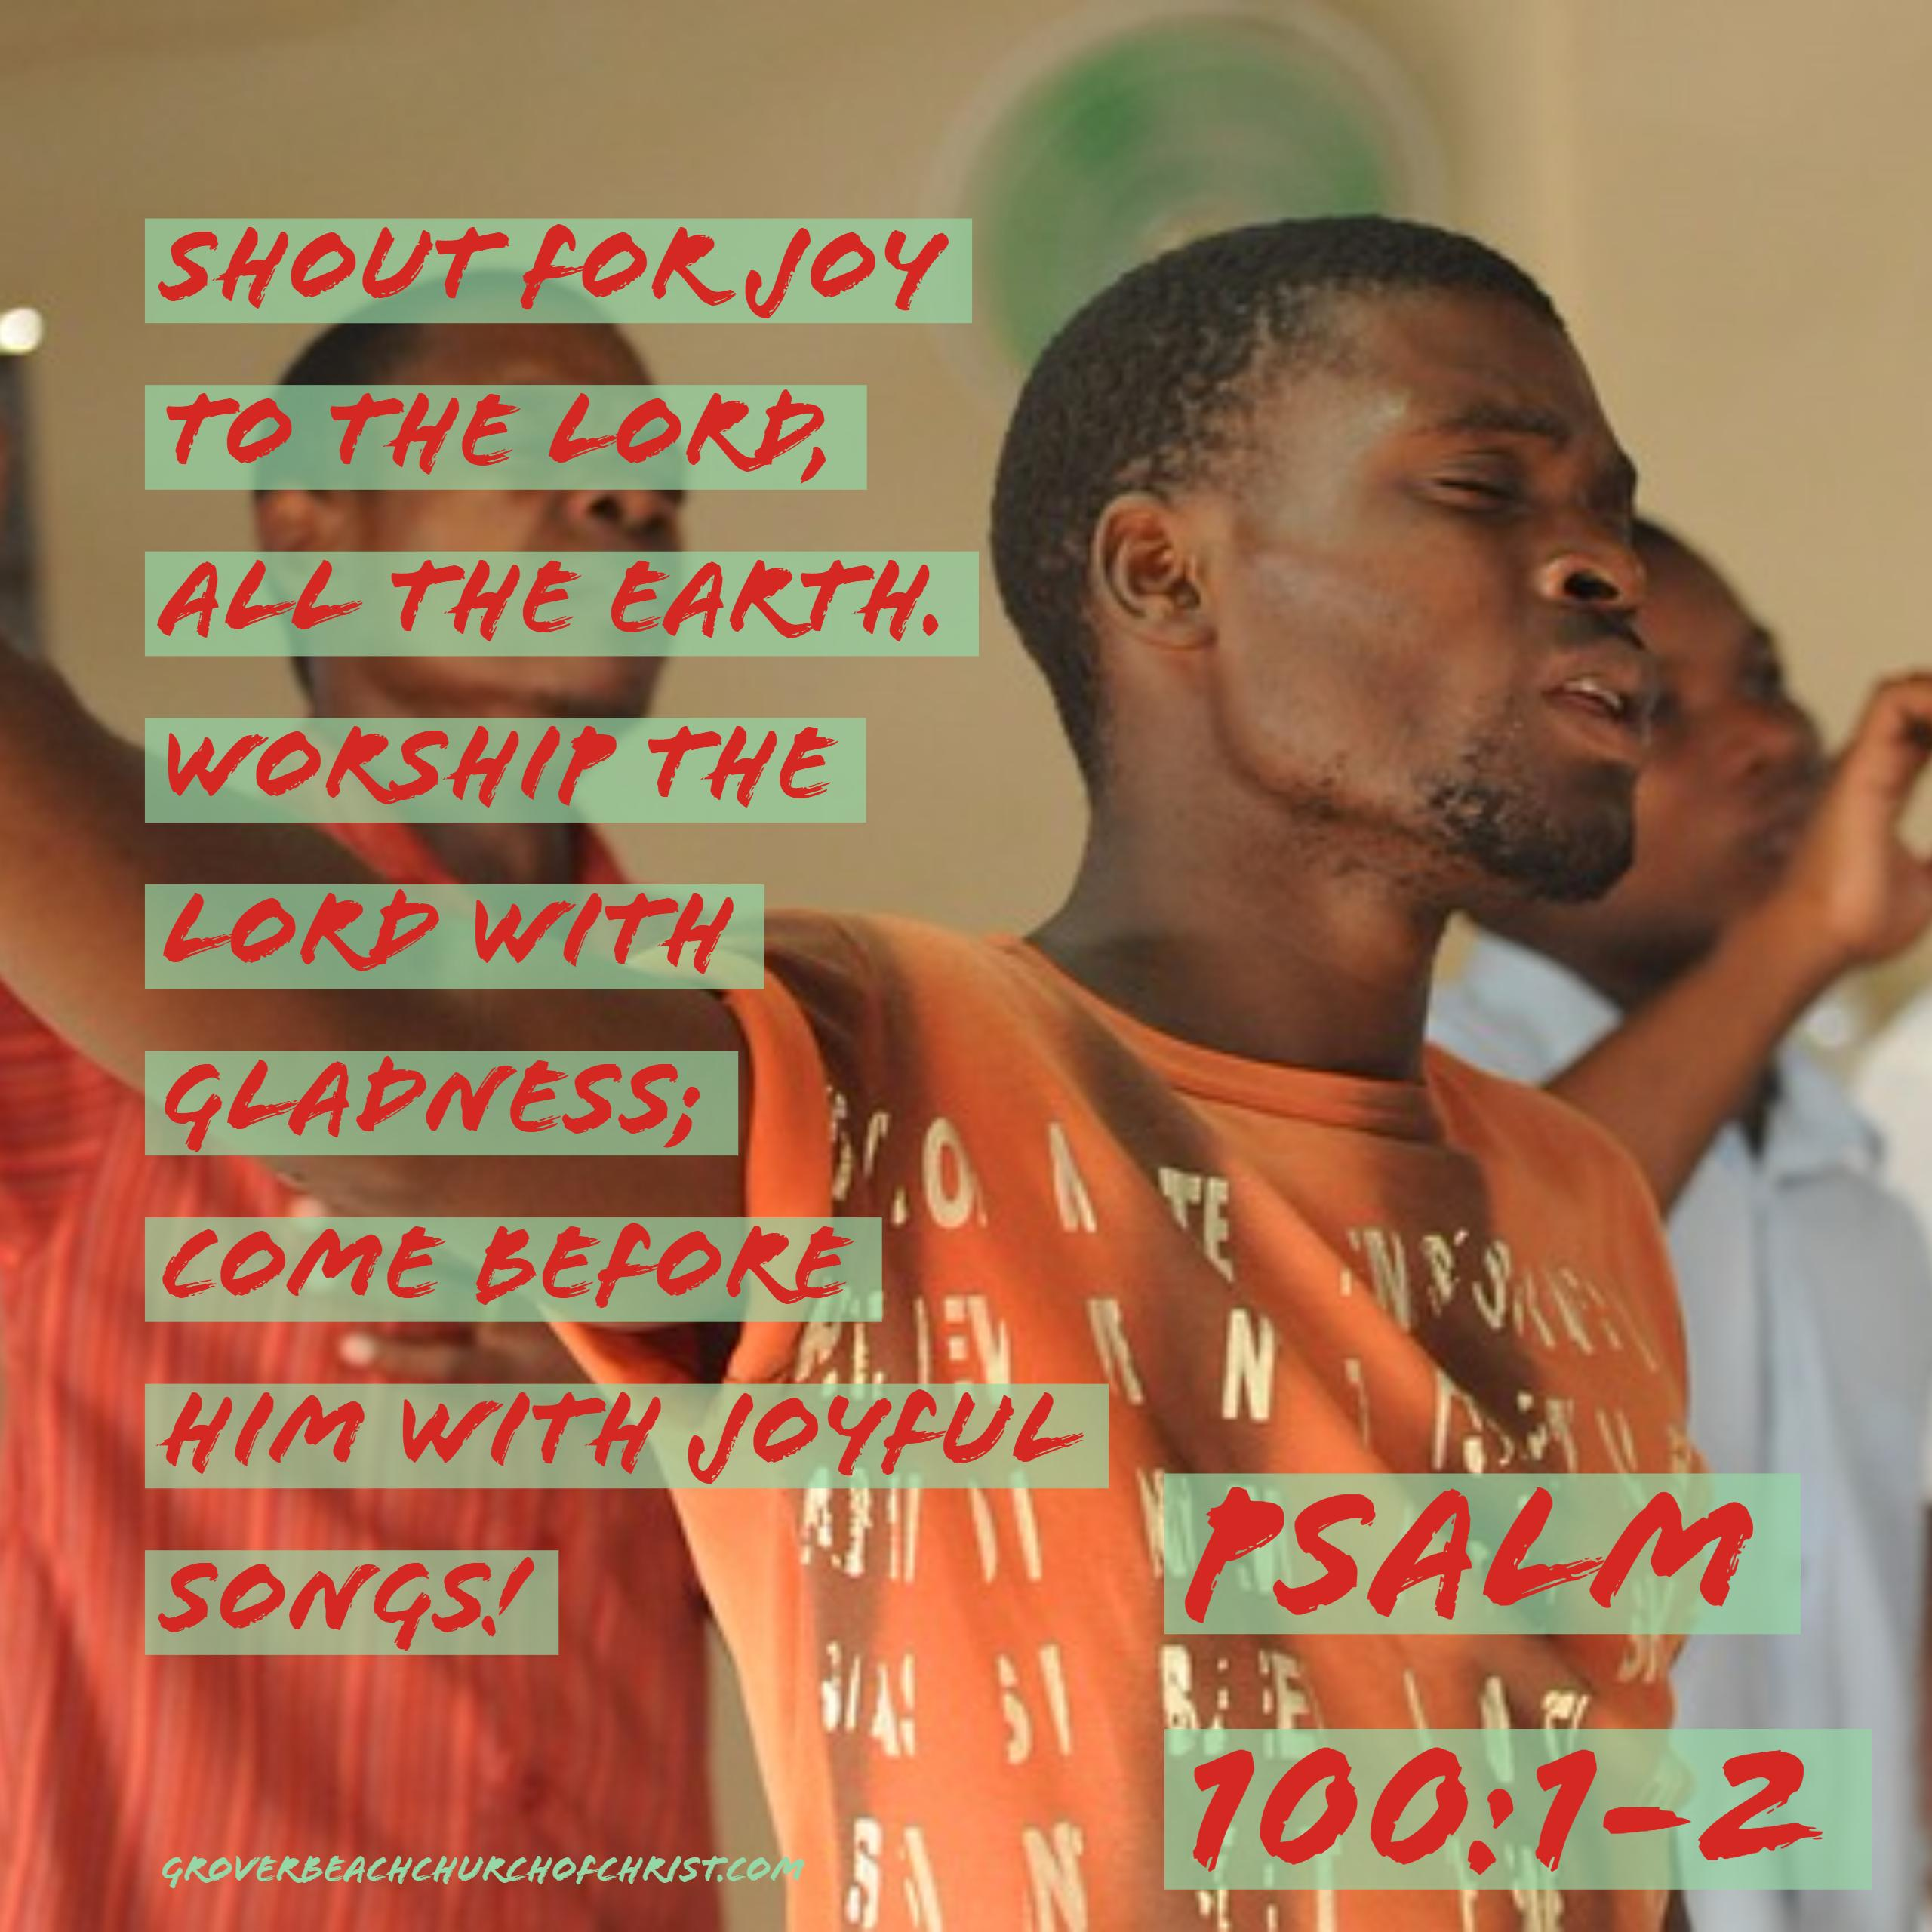 Psalm 100-1,2 Shout for joy to the Lord